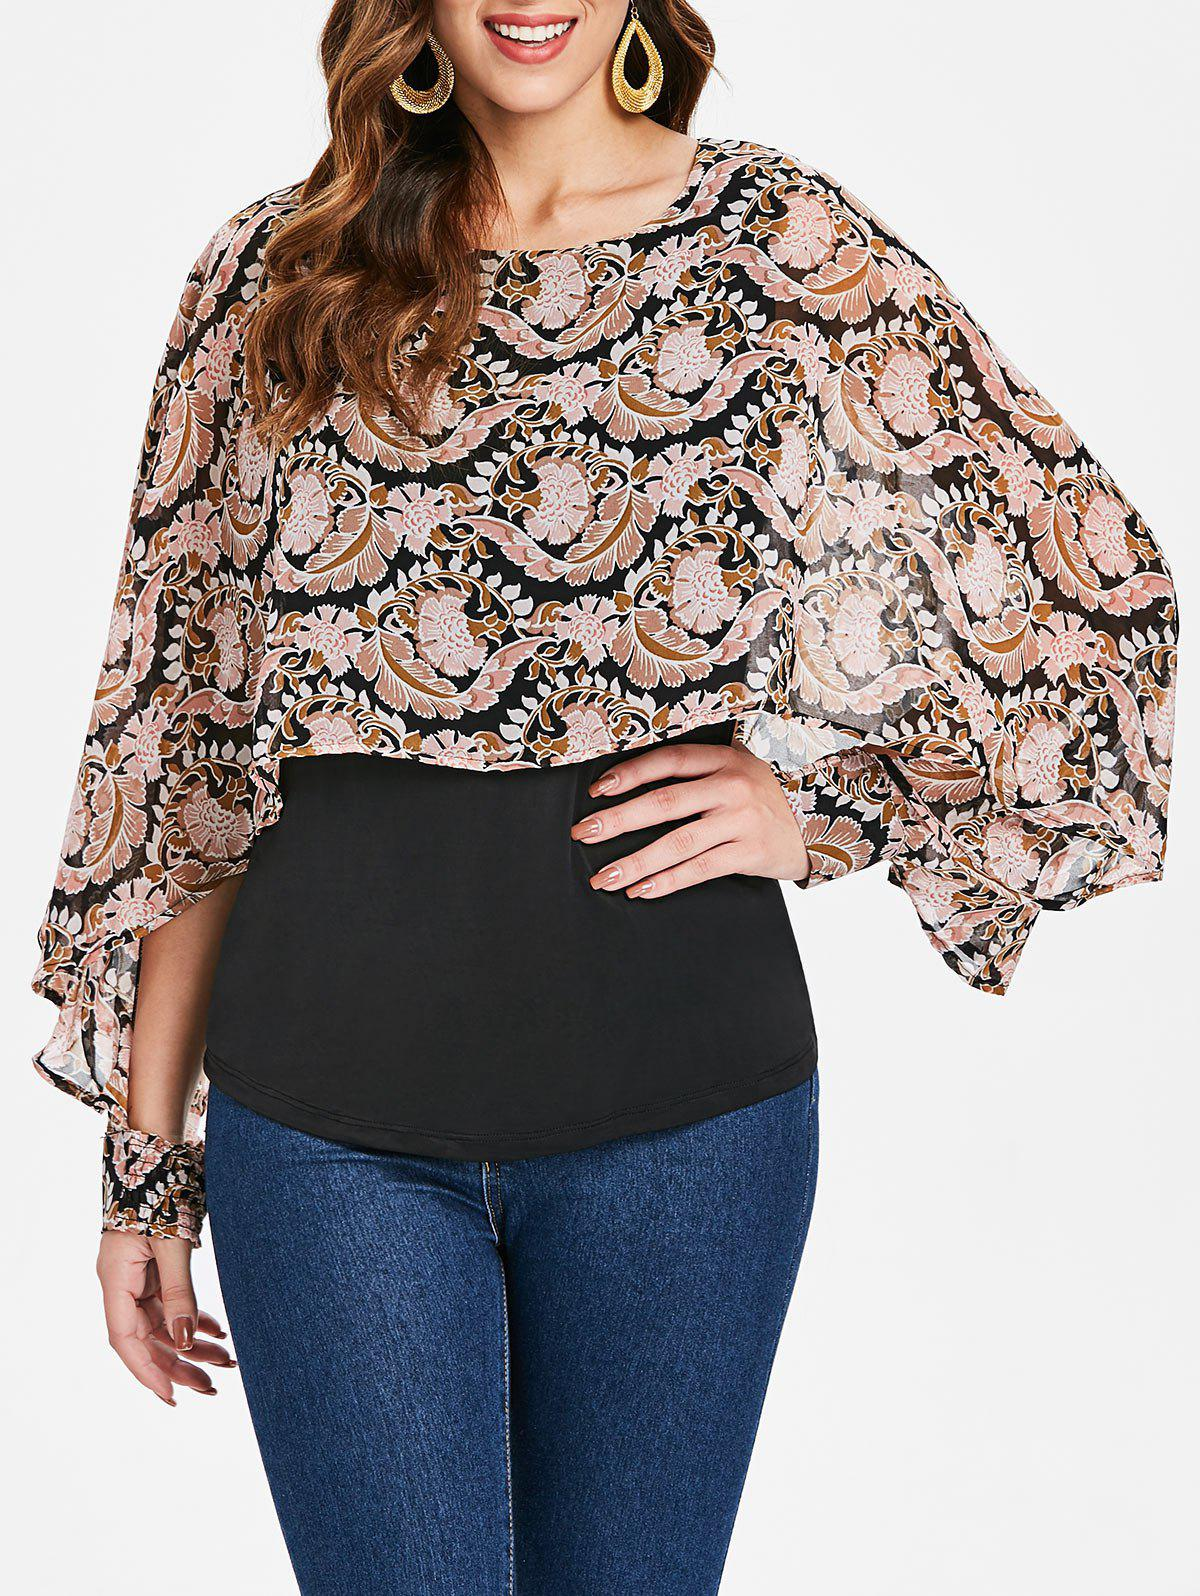 1351f9f58258b 51% OFF   2019 Floral Print Long Sleeve Cape Blouse